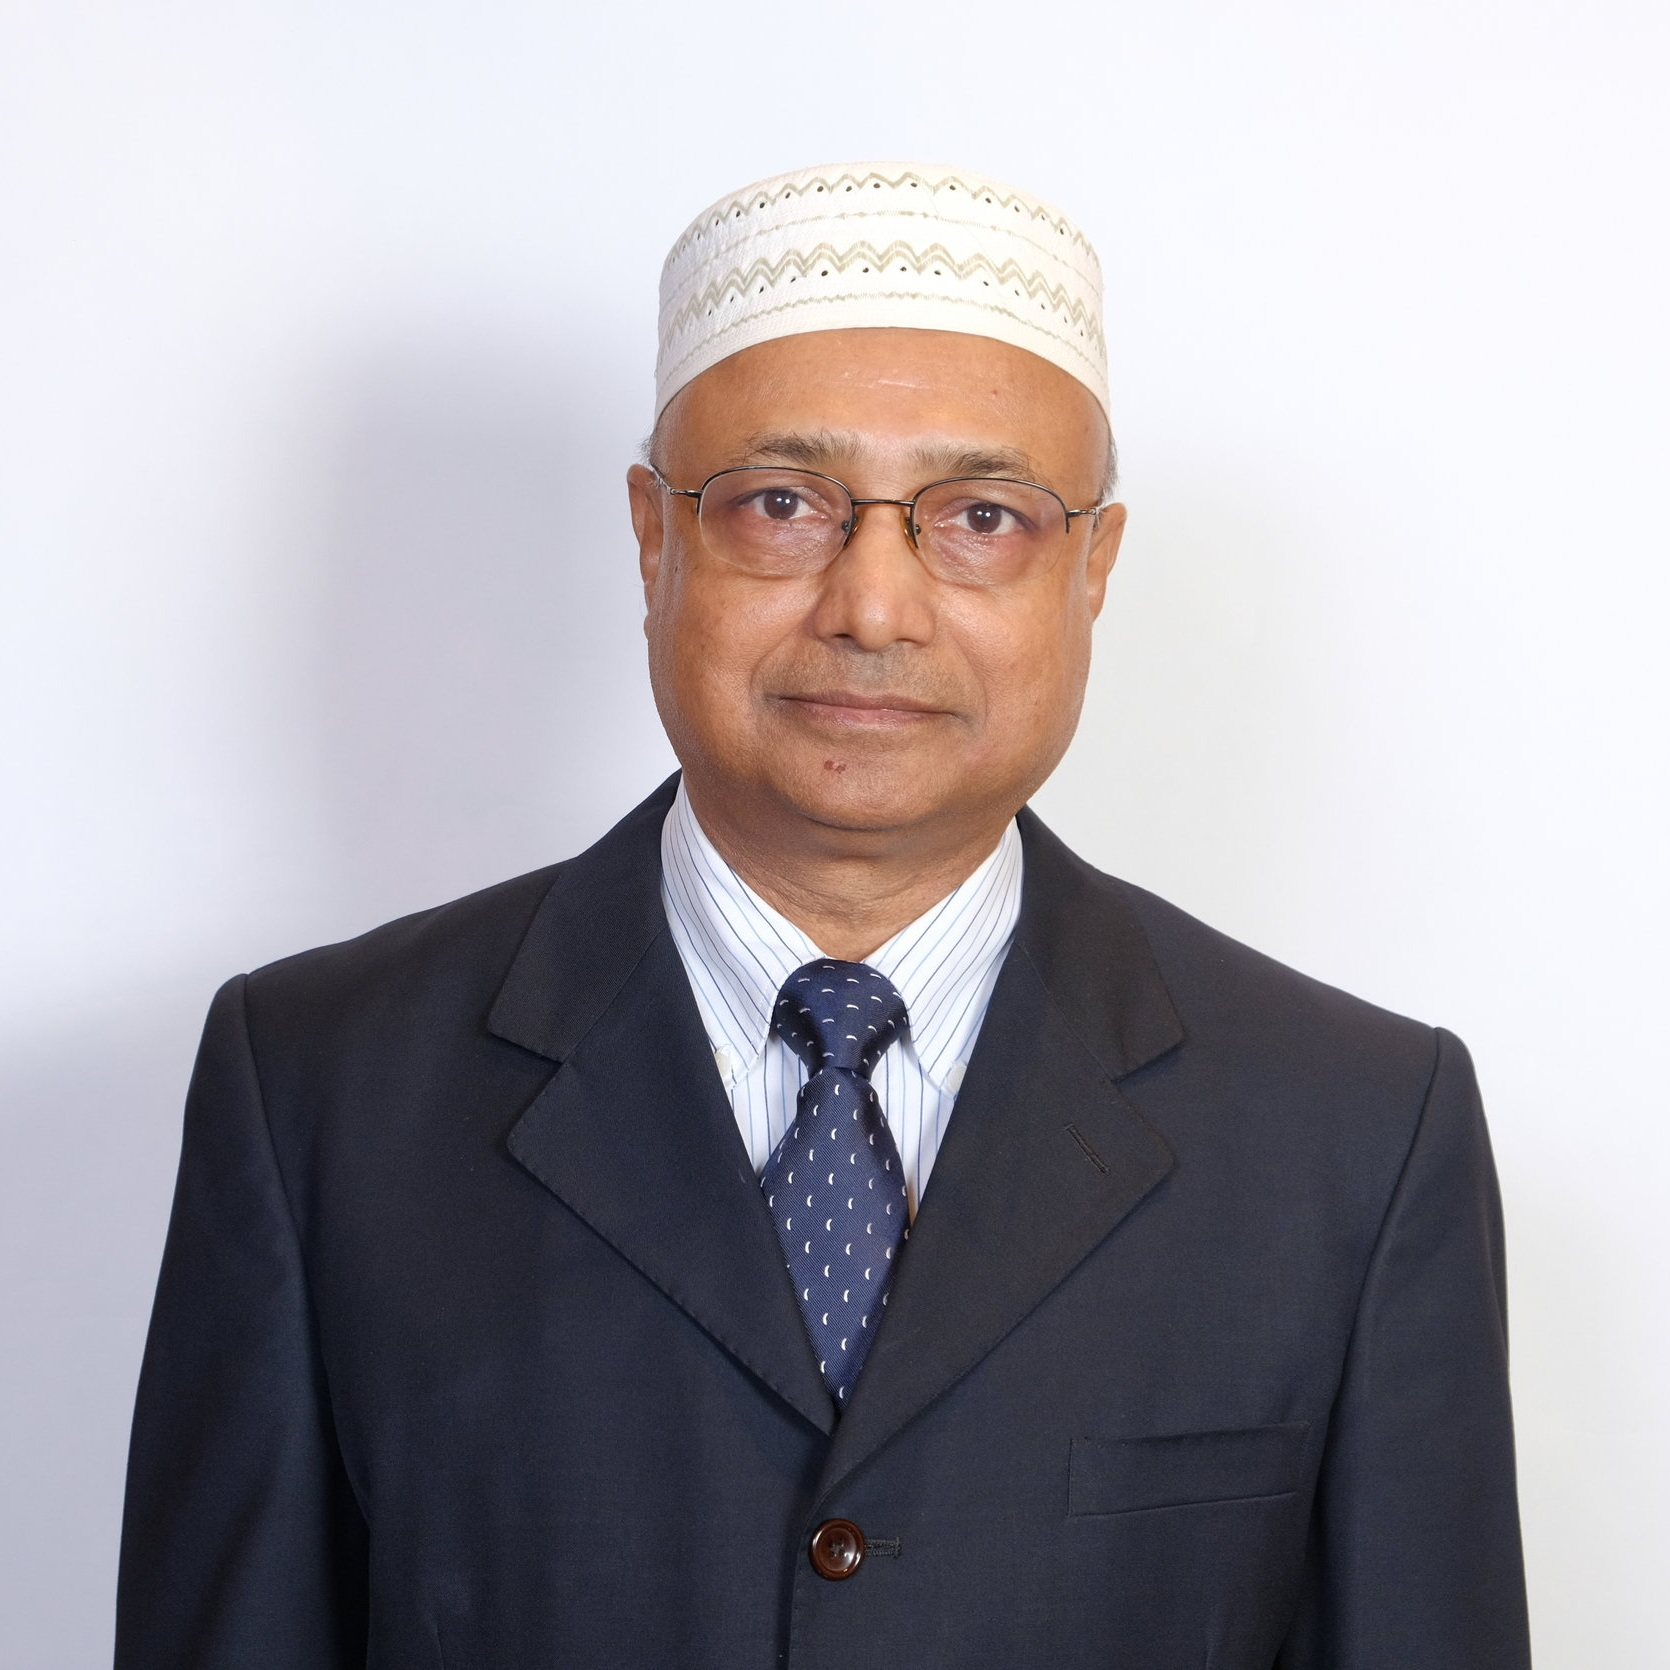 Mr. M Mukul HossainCOUNCIL MEMBER - Chief Executive Officer, MJL Bangladesh Limited